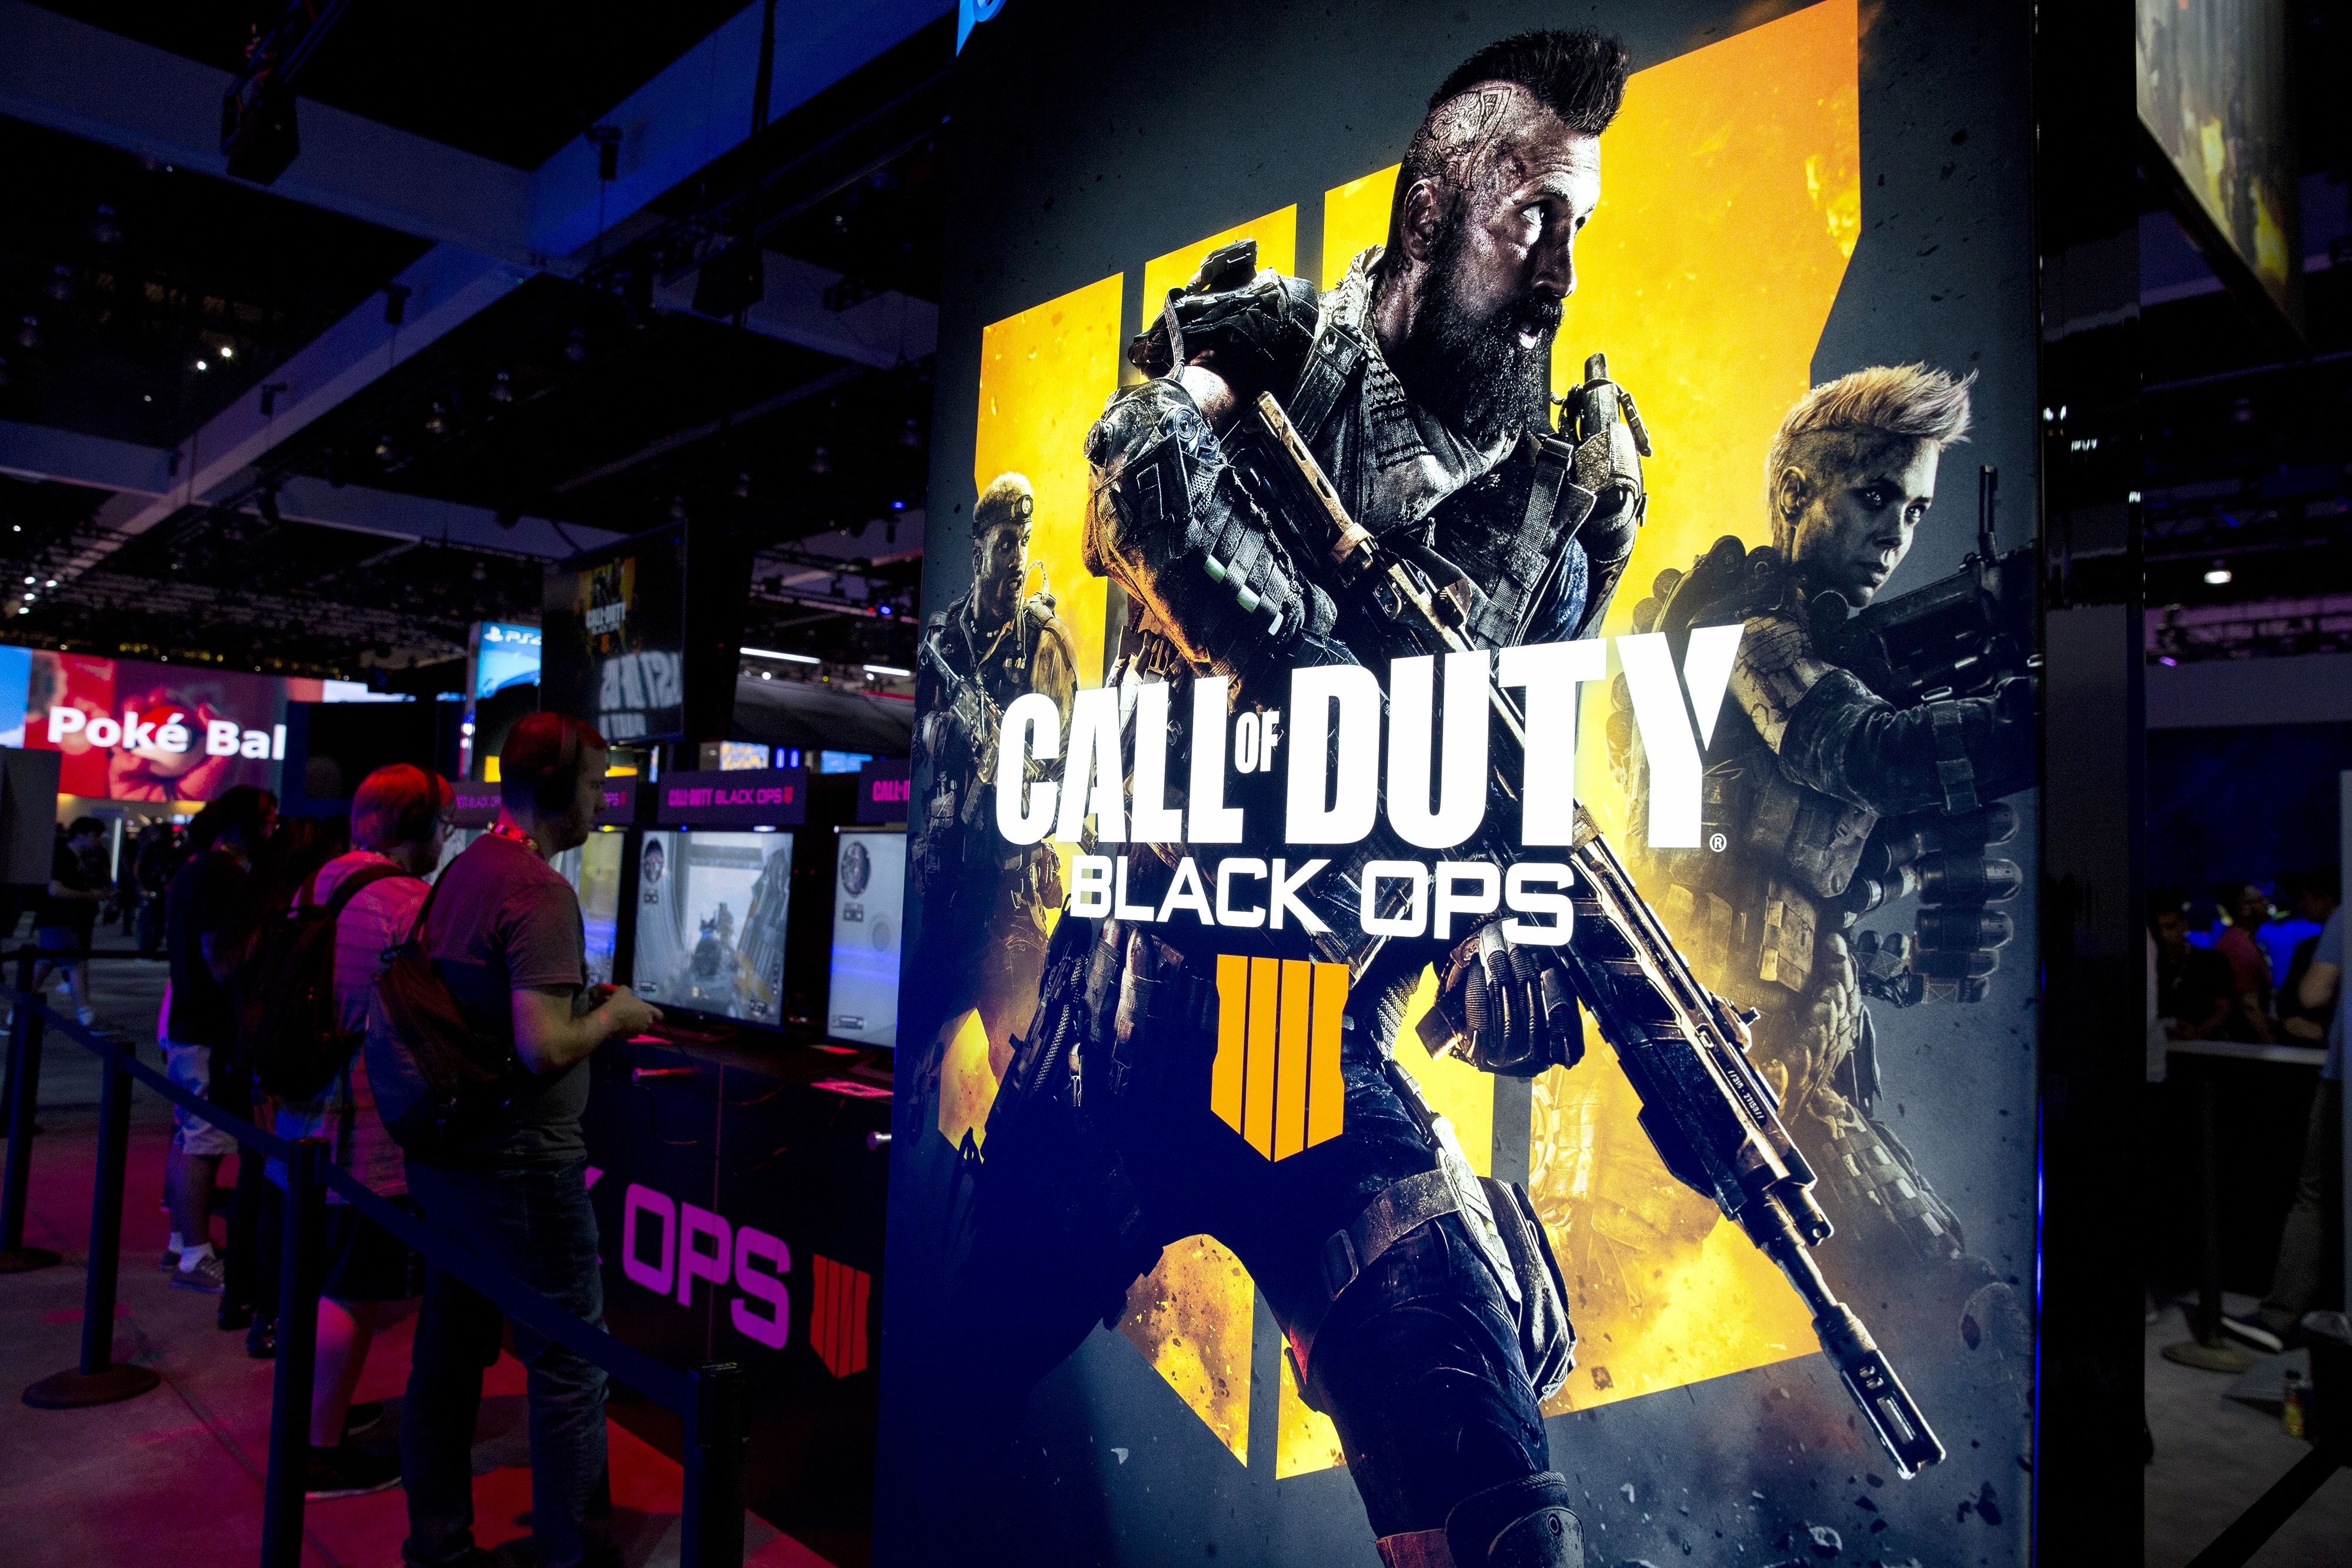 No evidence that violent video games are causing mass shootings